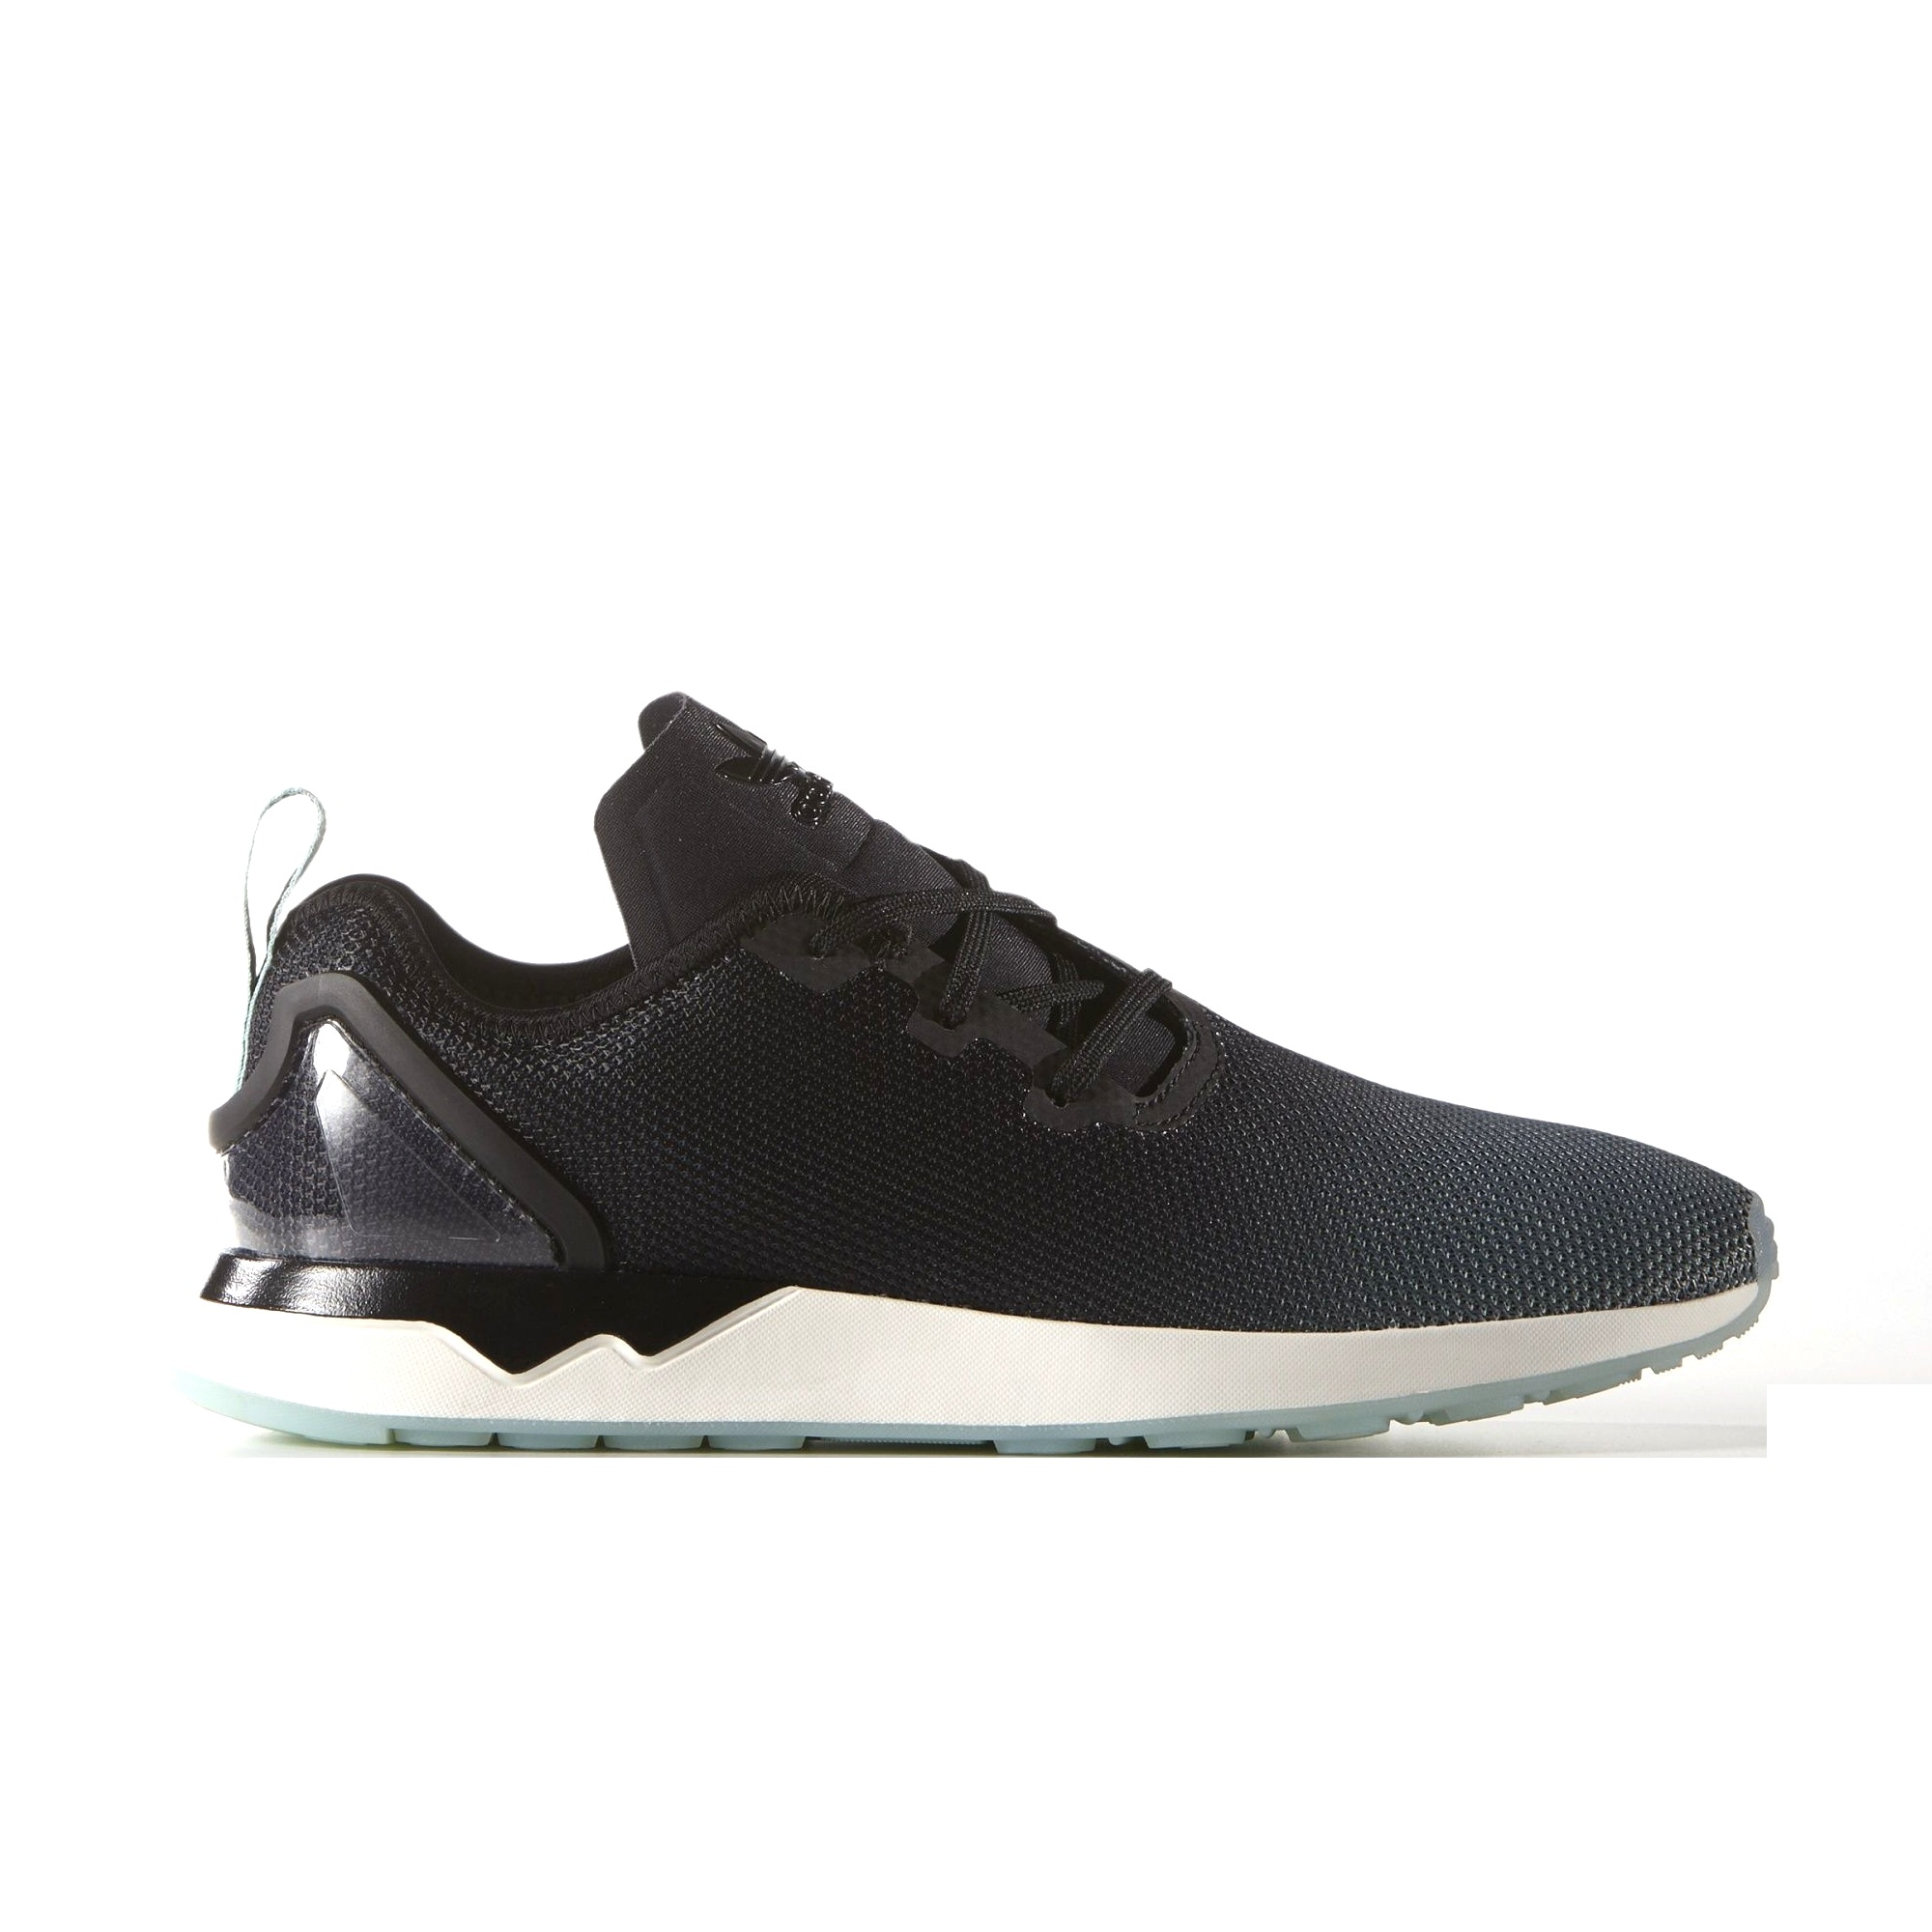 adidas zx flux advance